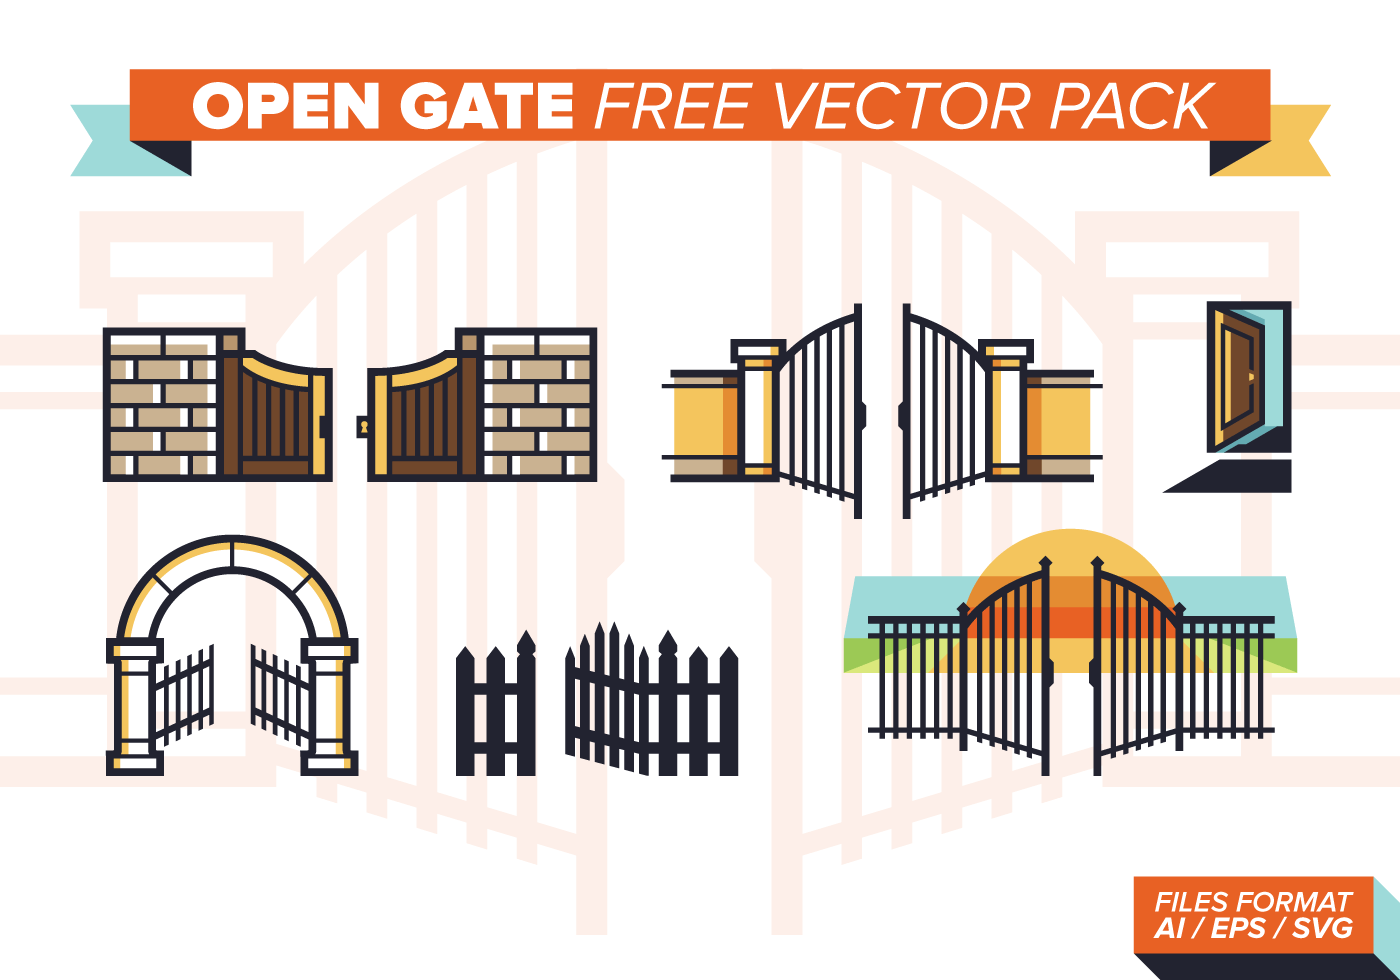 Open Gate Free Vector Pack Download Free Vector Art